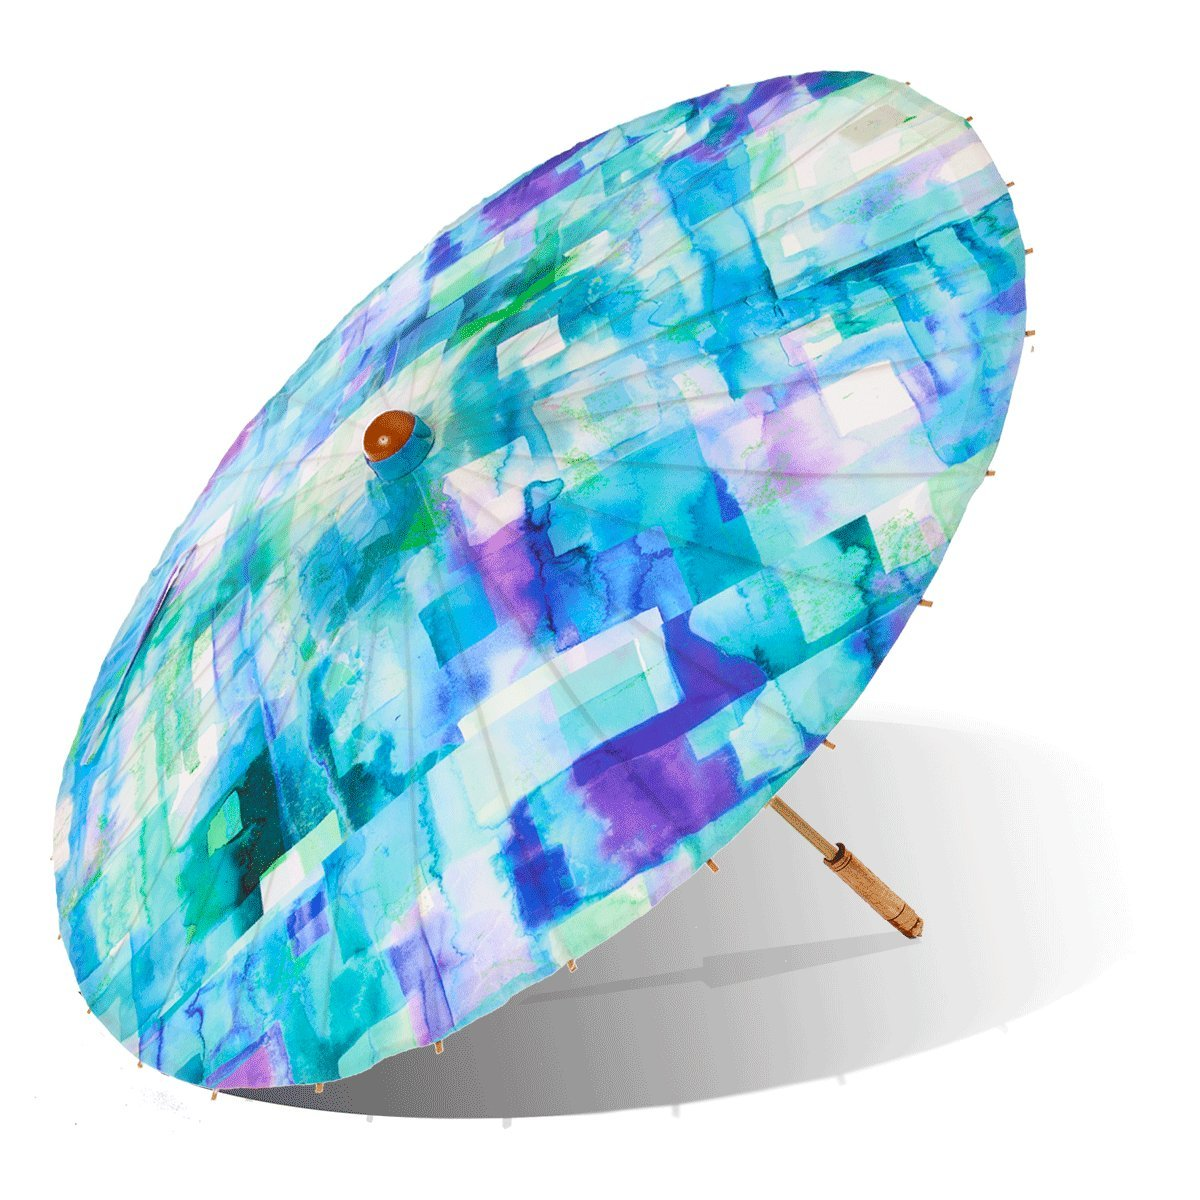 Lily-Lark Blue Squares UV protection sun parasol, rated UPF 50+ by Lily-Lark